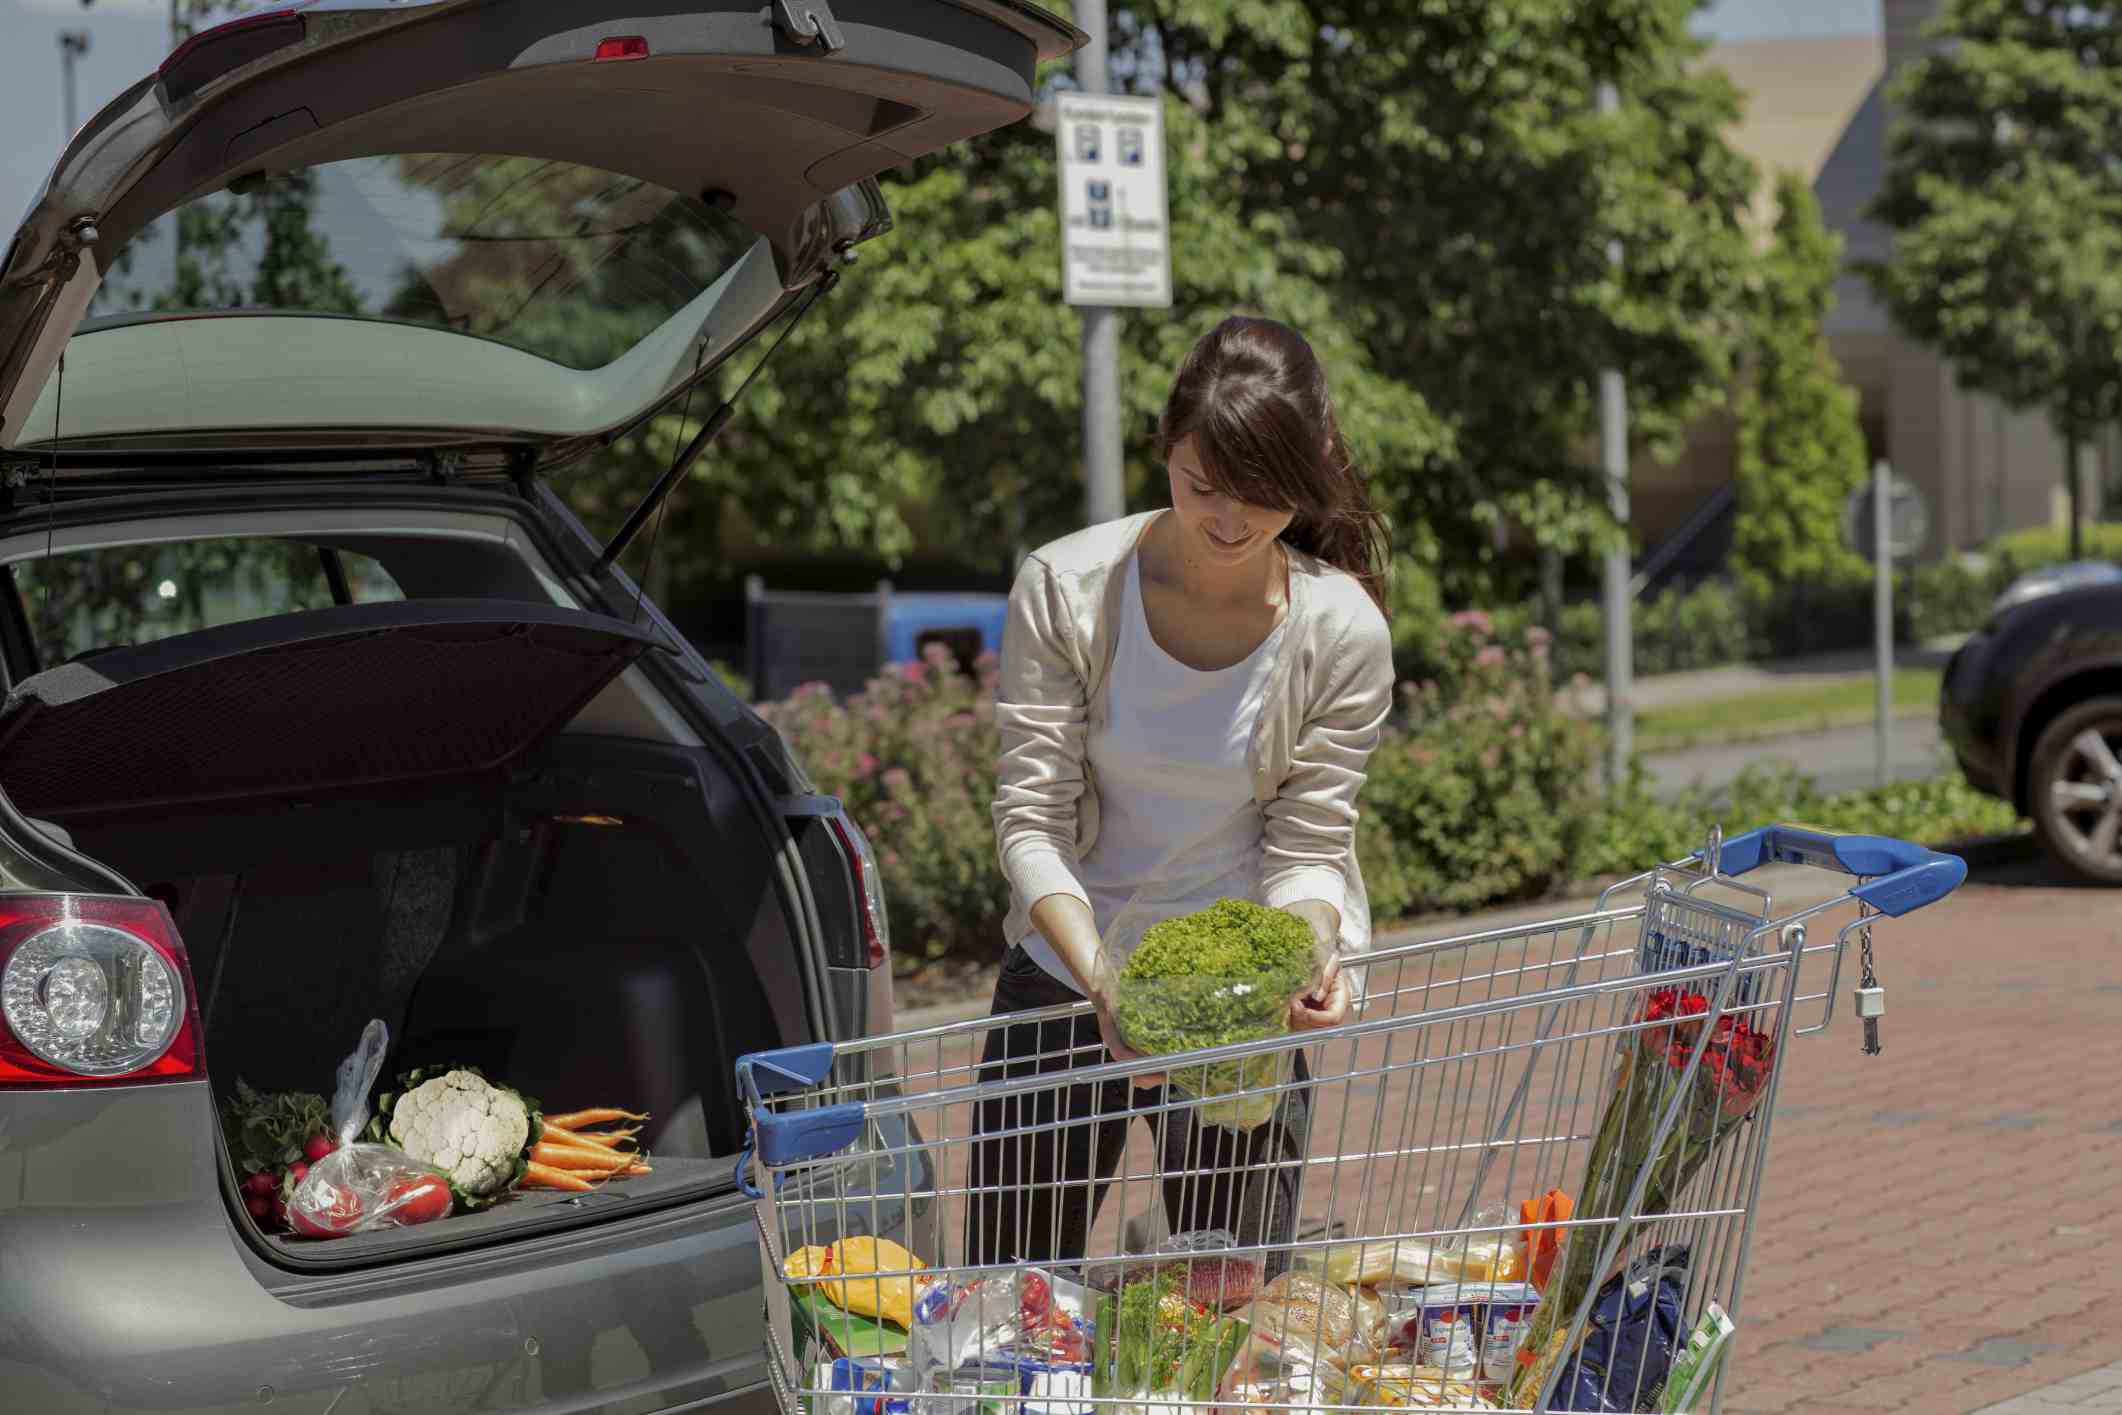 Groceries in a car.